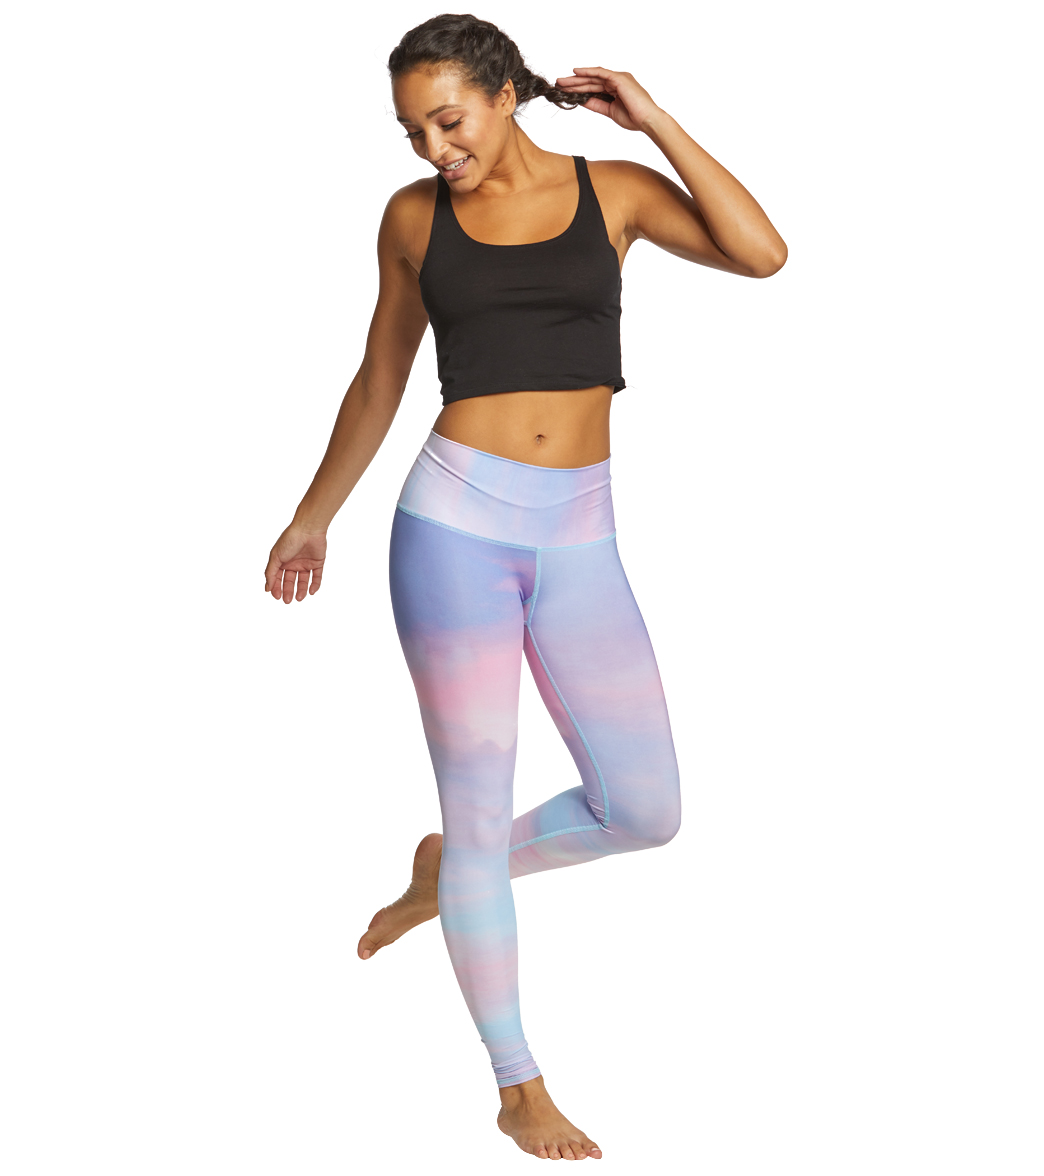 39c89340999a3 Teeki Pastel Clouds Hot Pants at YogaOutlet.com - Free Shipping